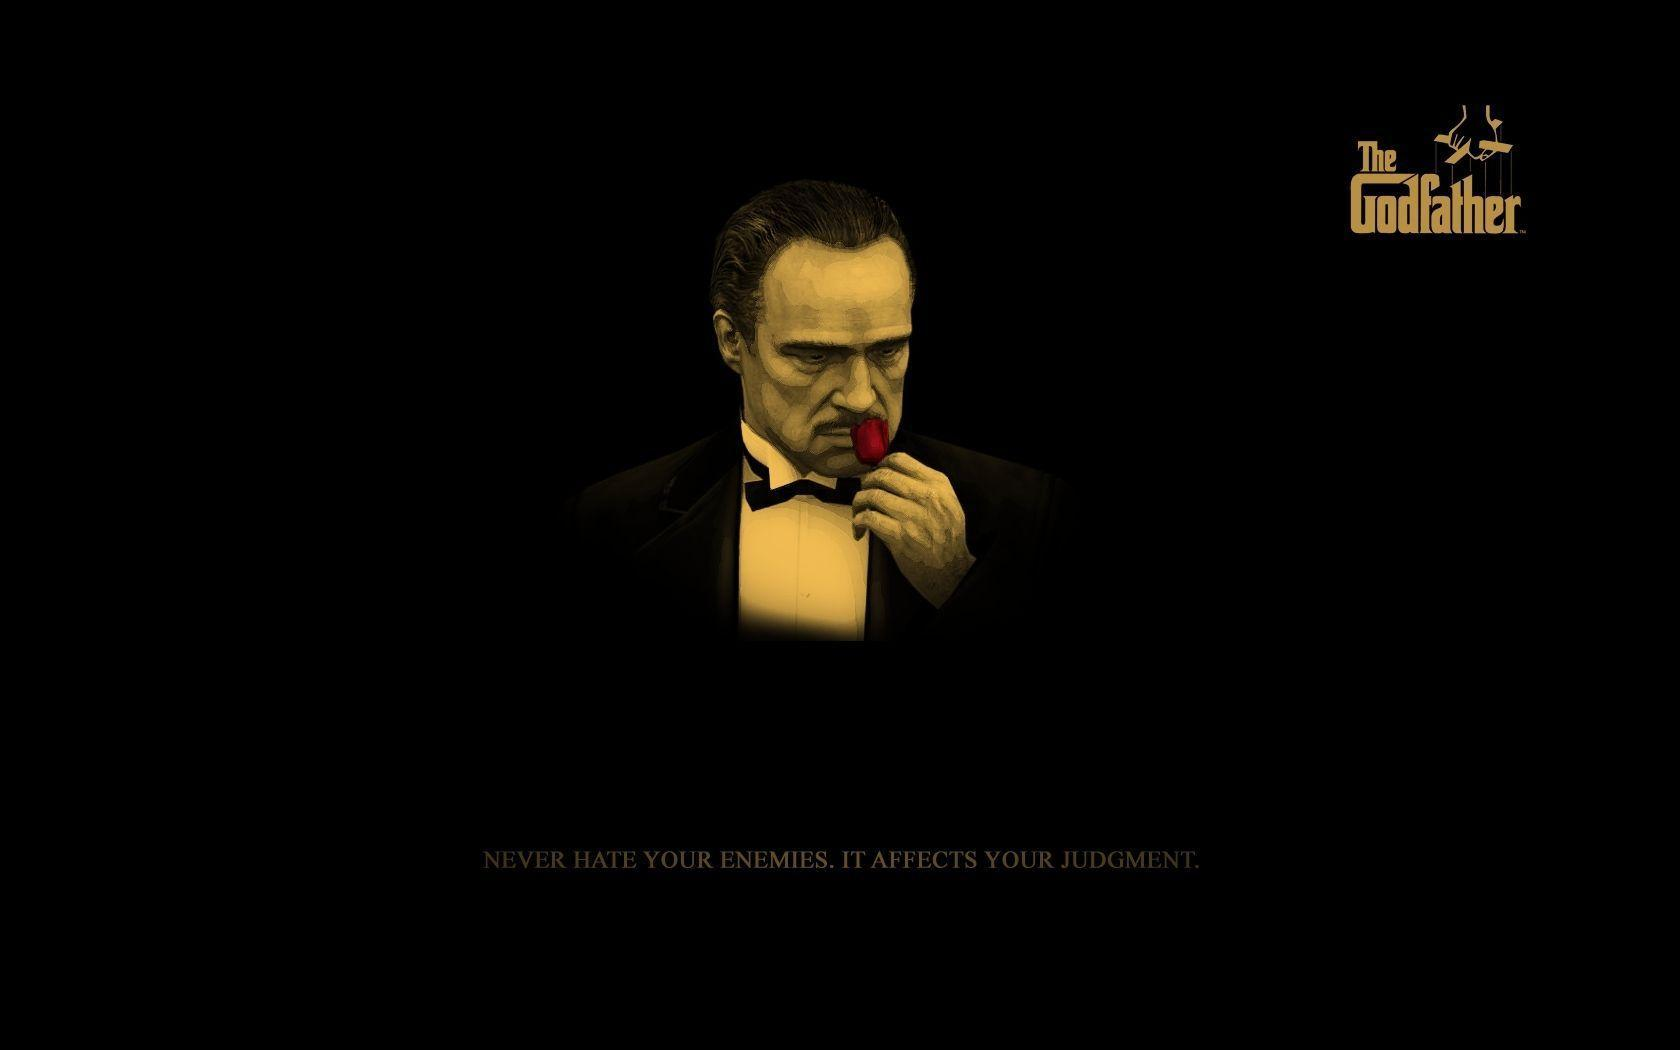 The Godfather - The Godfather Trilogy Wallpaper (15986824) - Fanpop